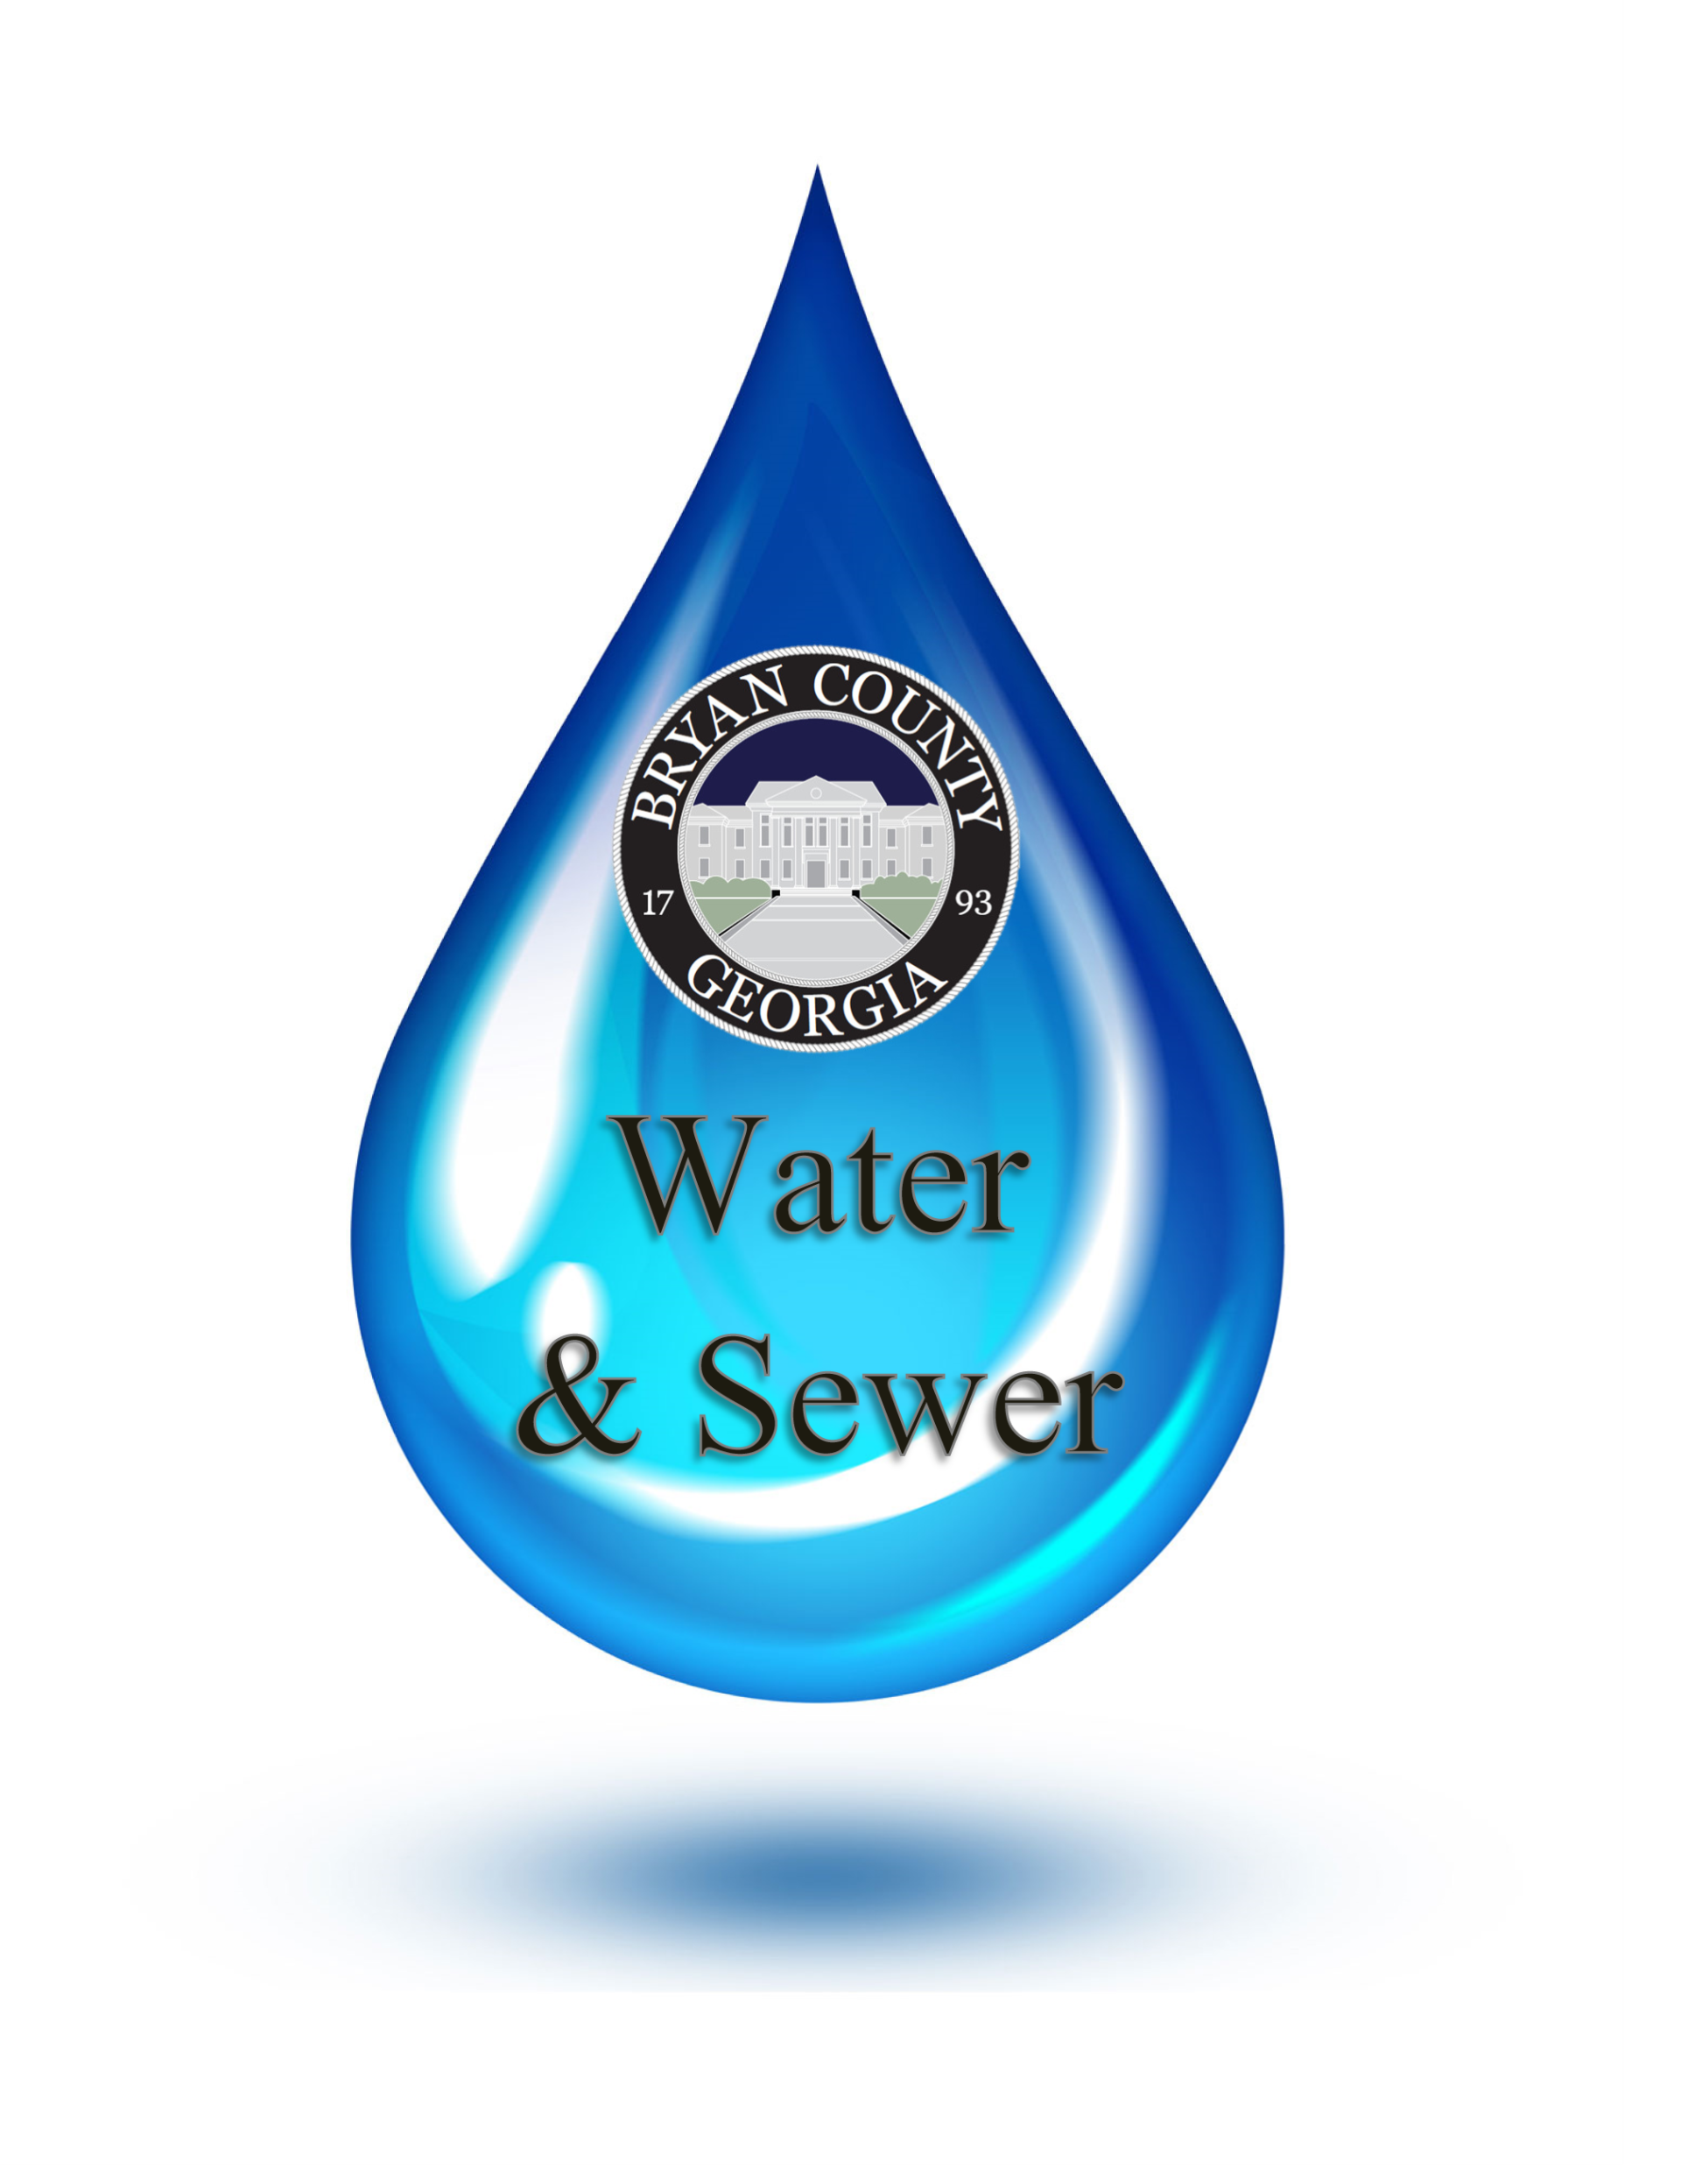 Bryan County 2015 Water Quality Reports